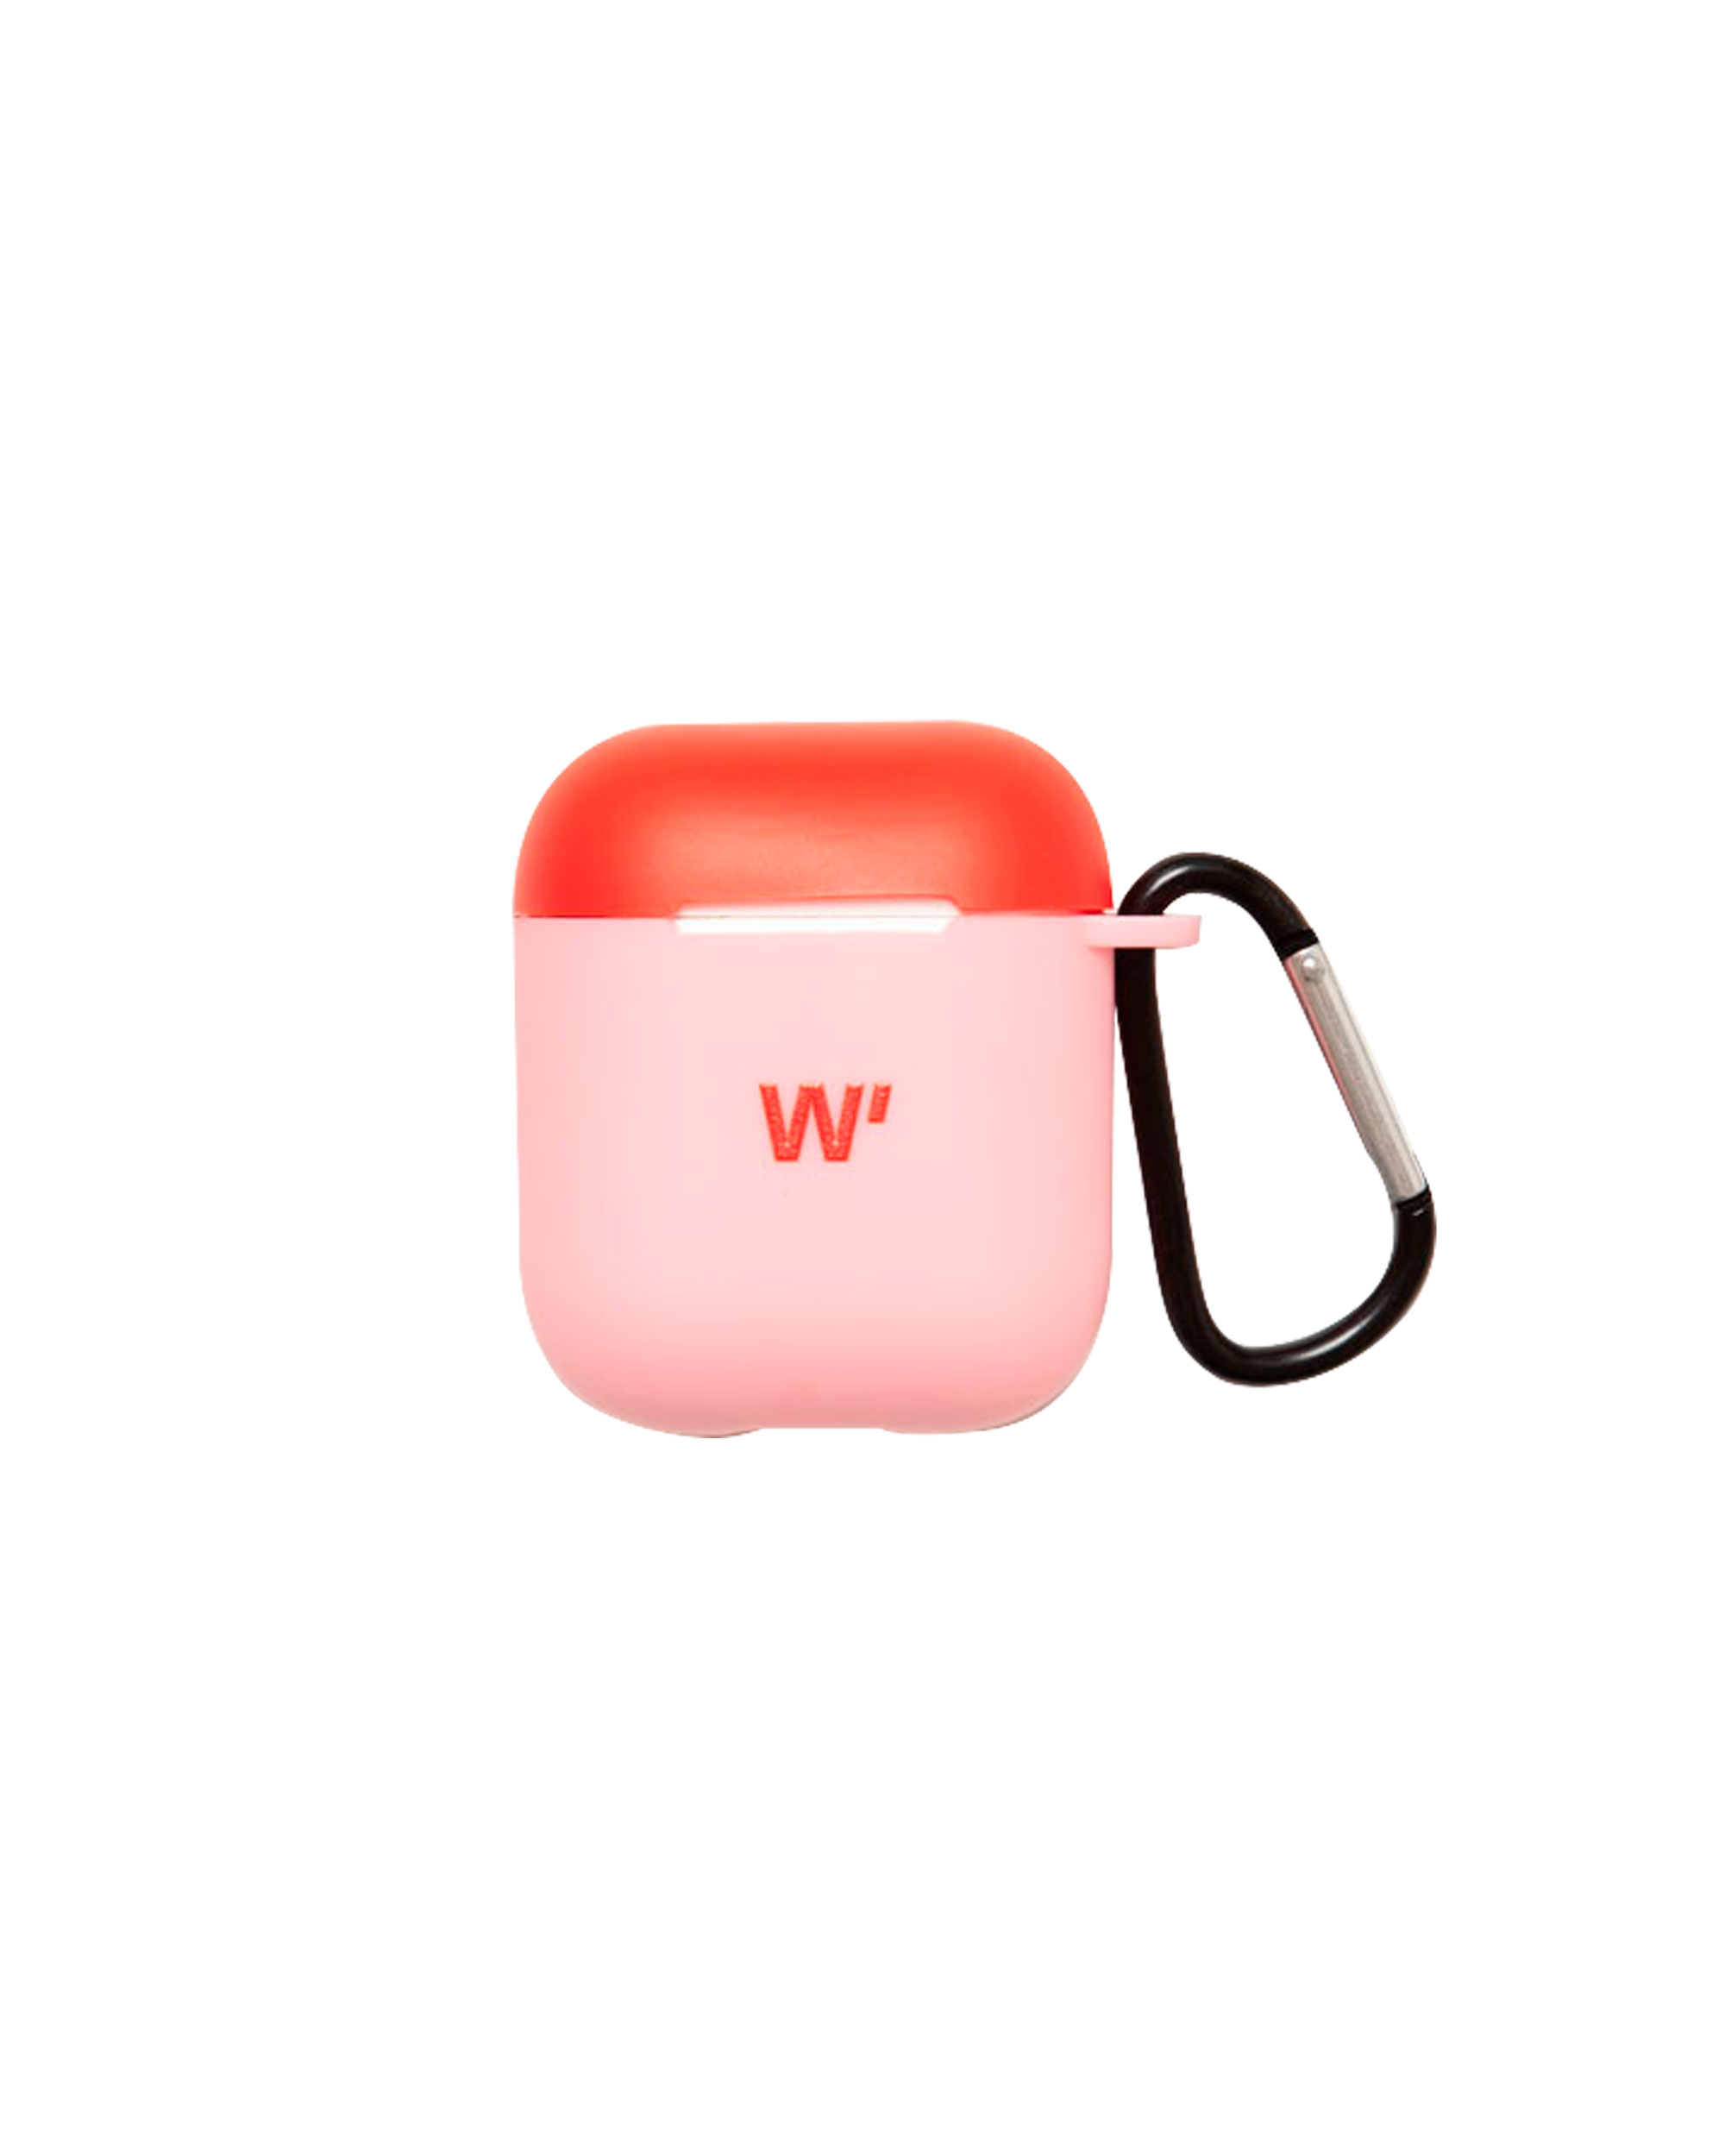 BLOCK PINK - Coque pour Airpods pro